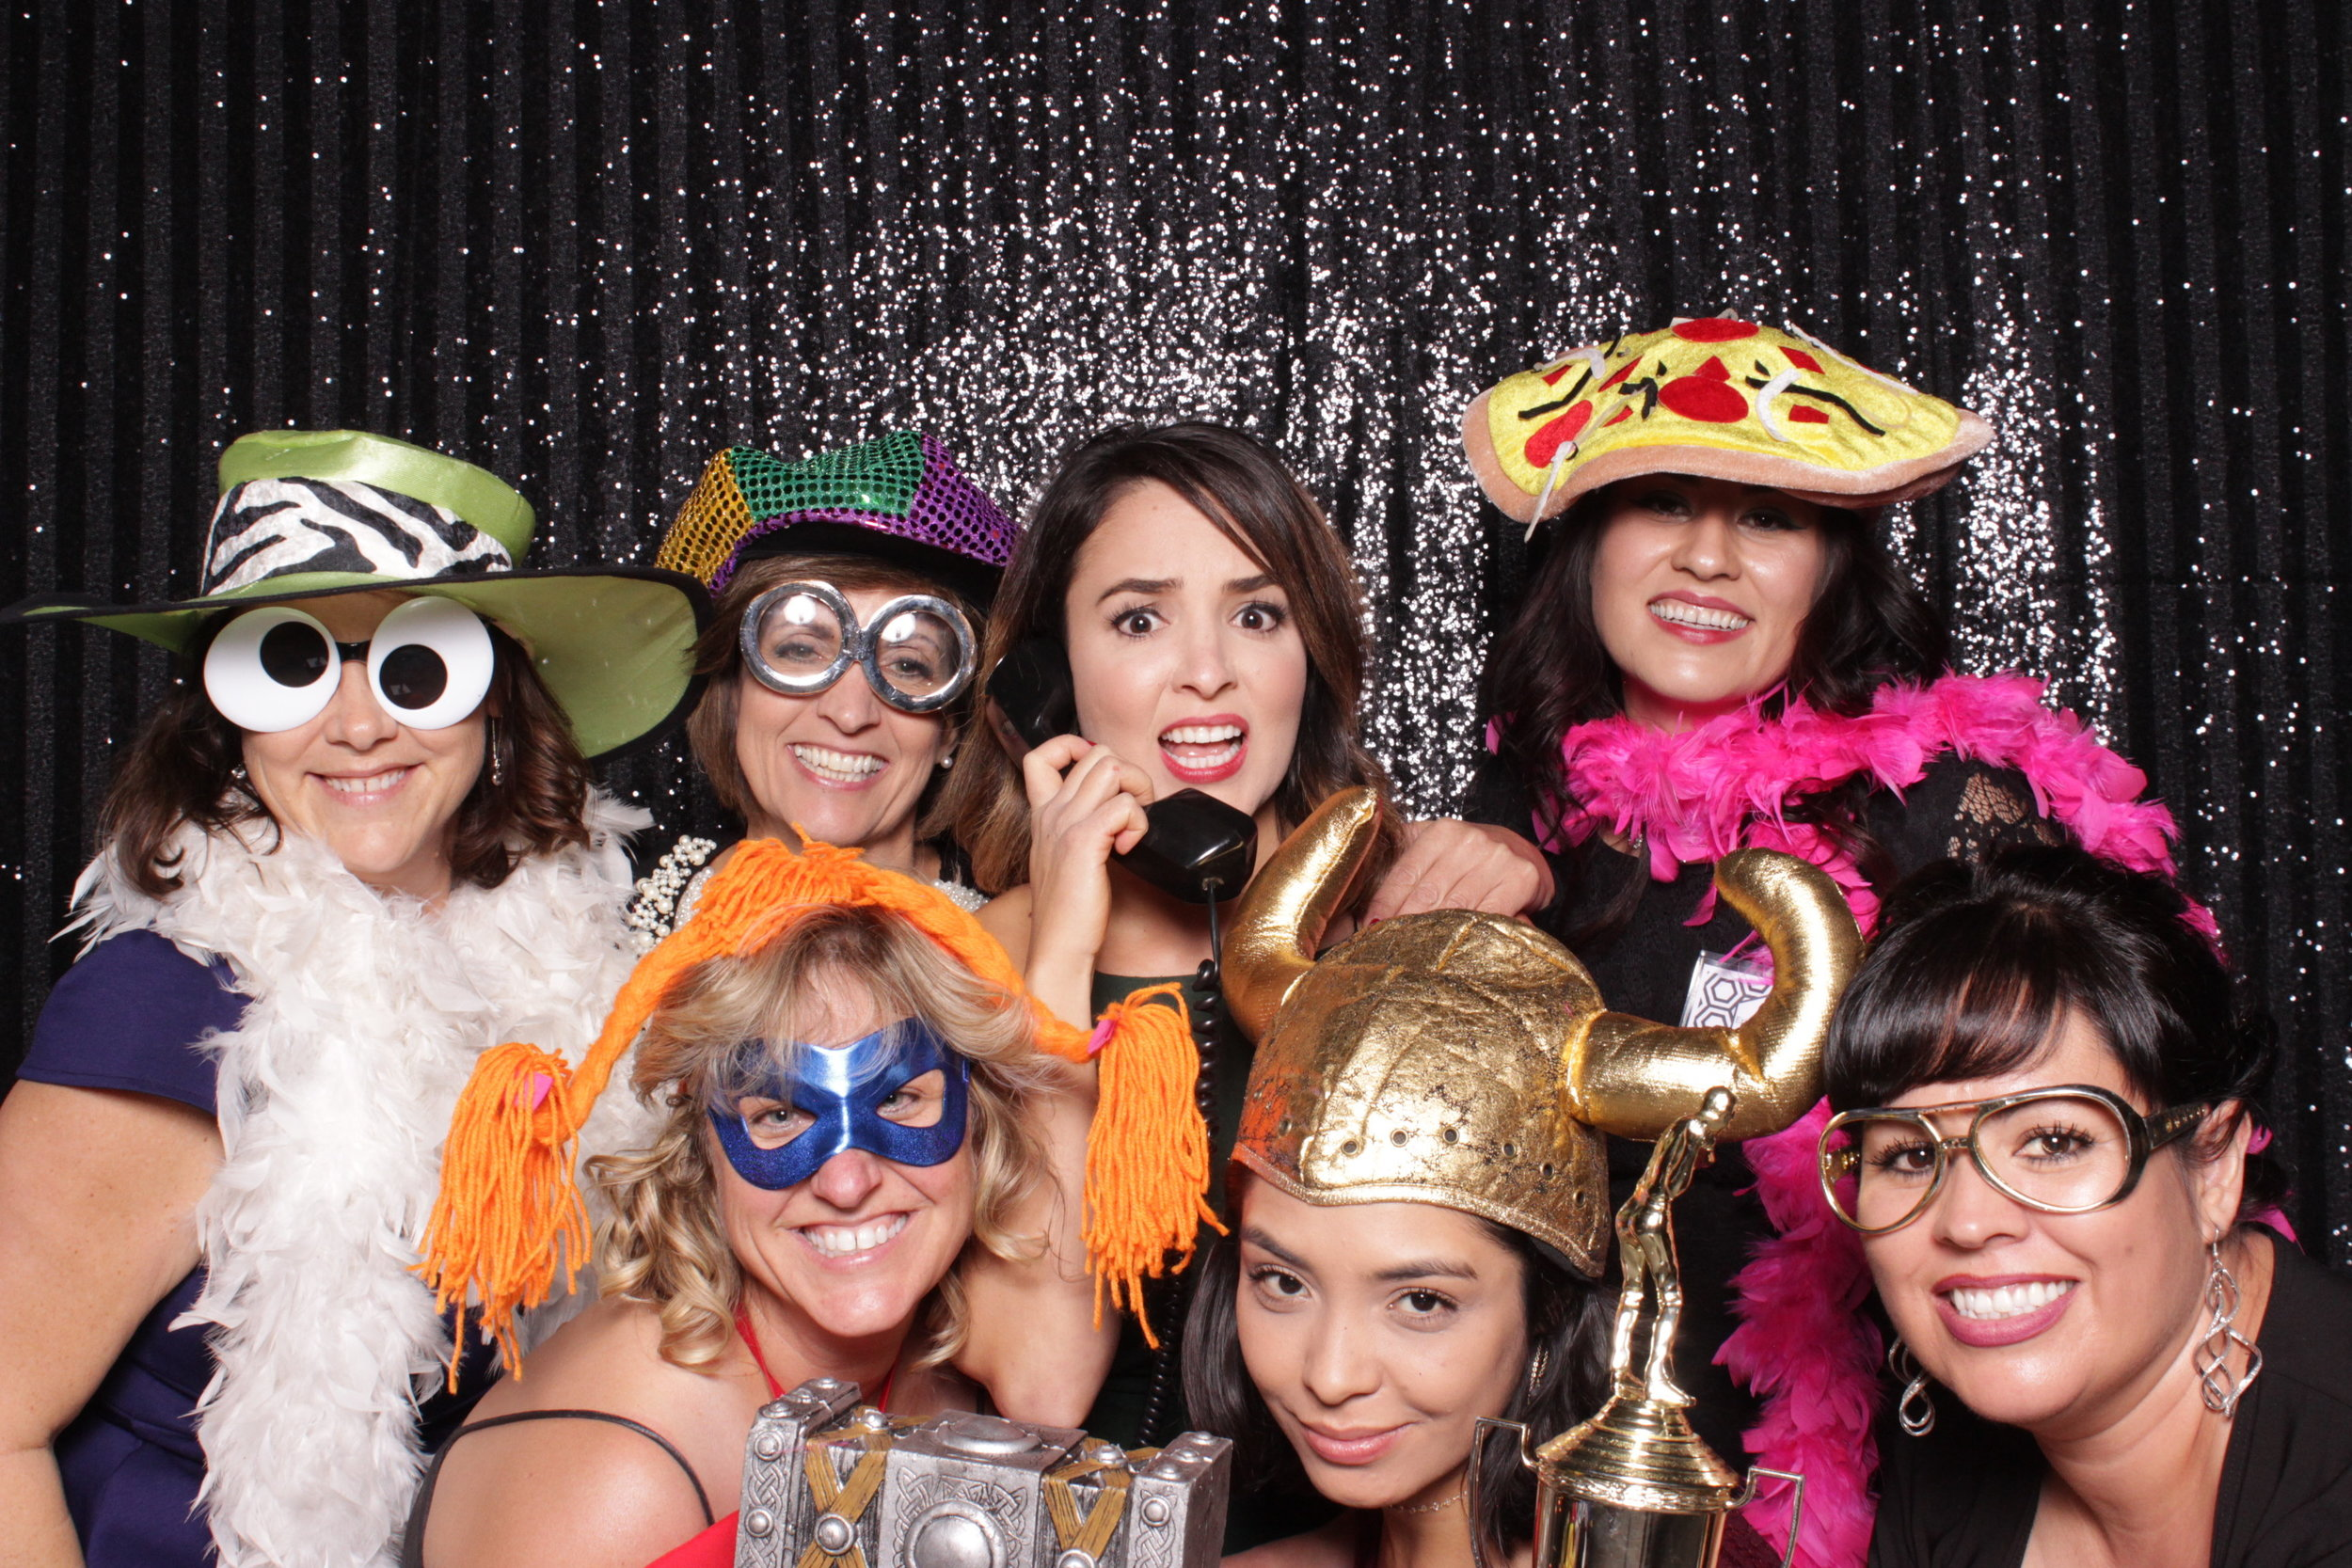 Chico-photo-booth-rental-online-upload